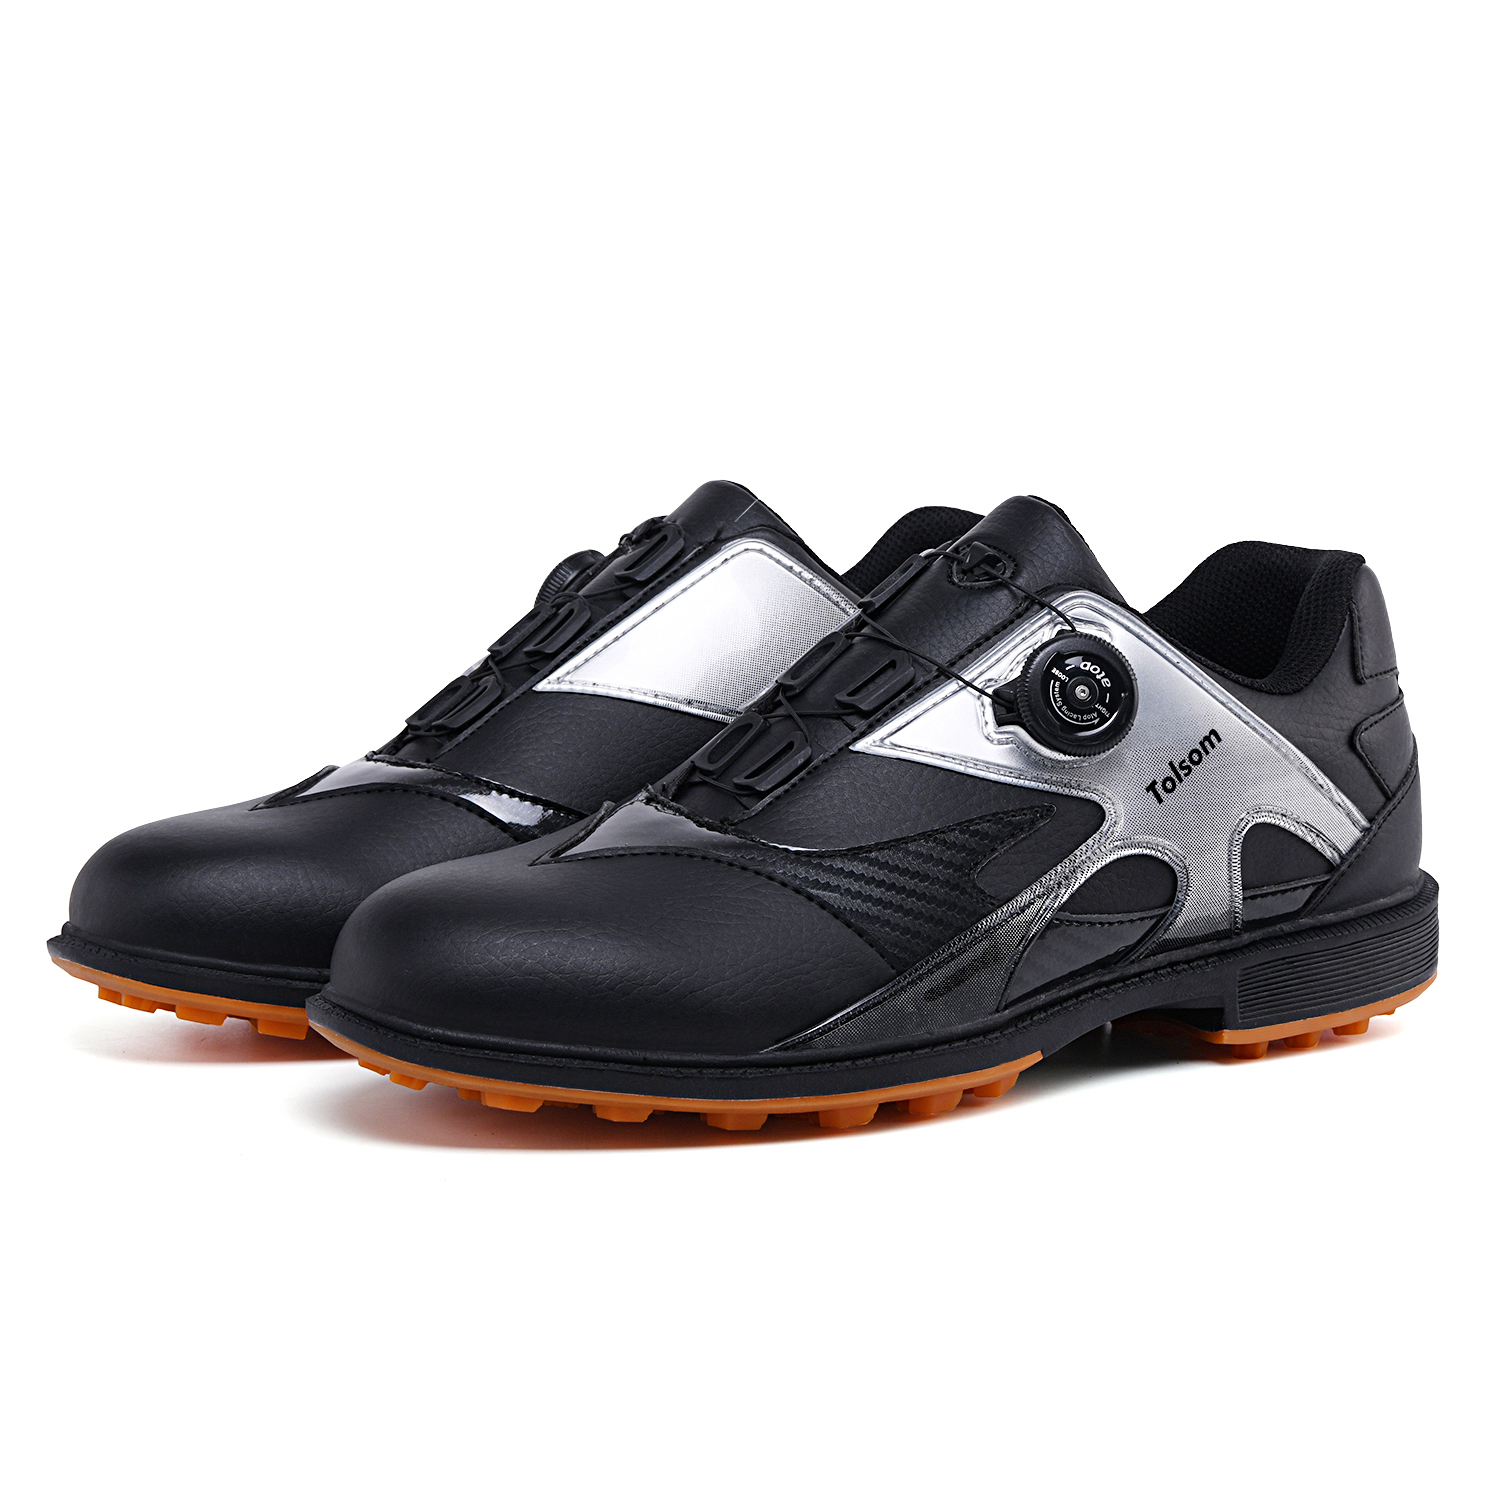 Custom Wholesale Microfiber Durable Comfortable Golf Shoes For Kids Men Buy Durable Comfortable Golf Shoes For Kids Leather Golf Shoes Waterproof Golf Shoes Product On Alibaba Com